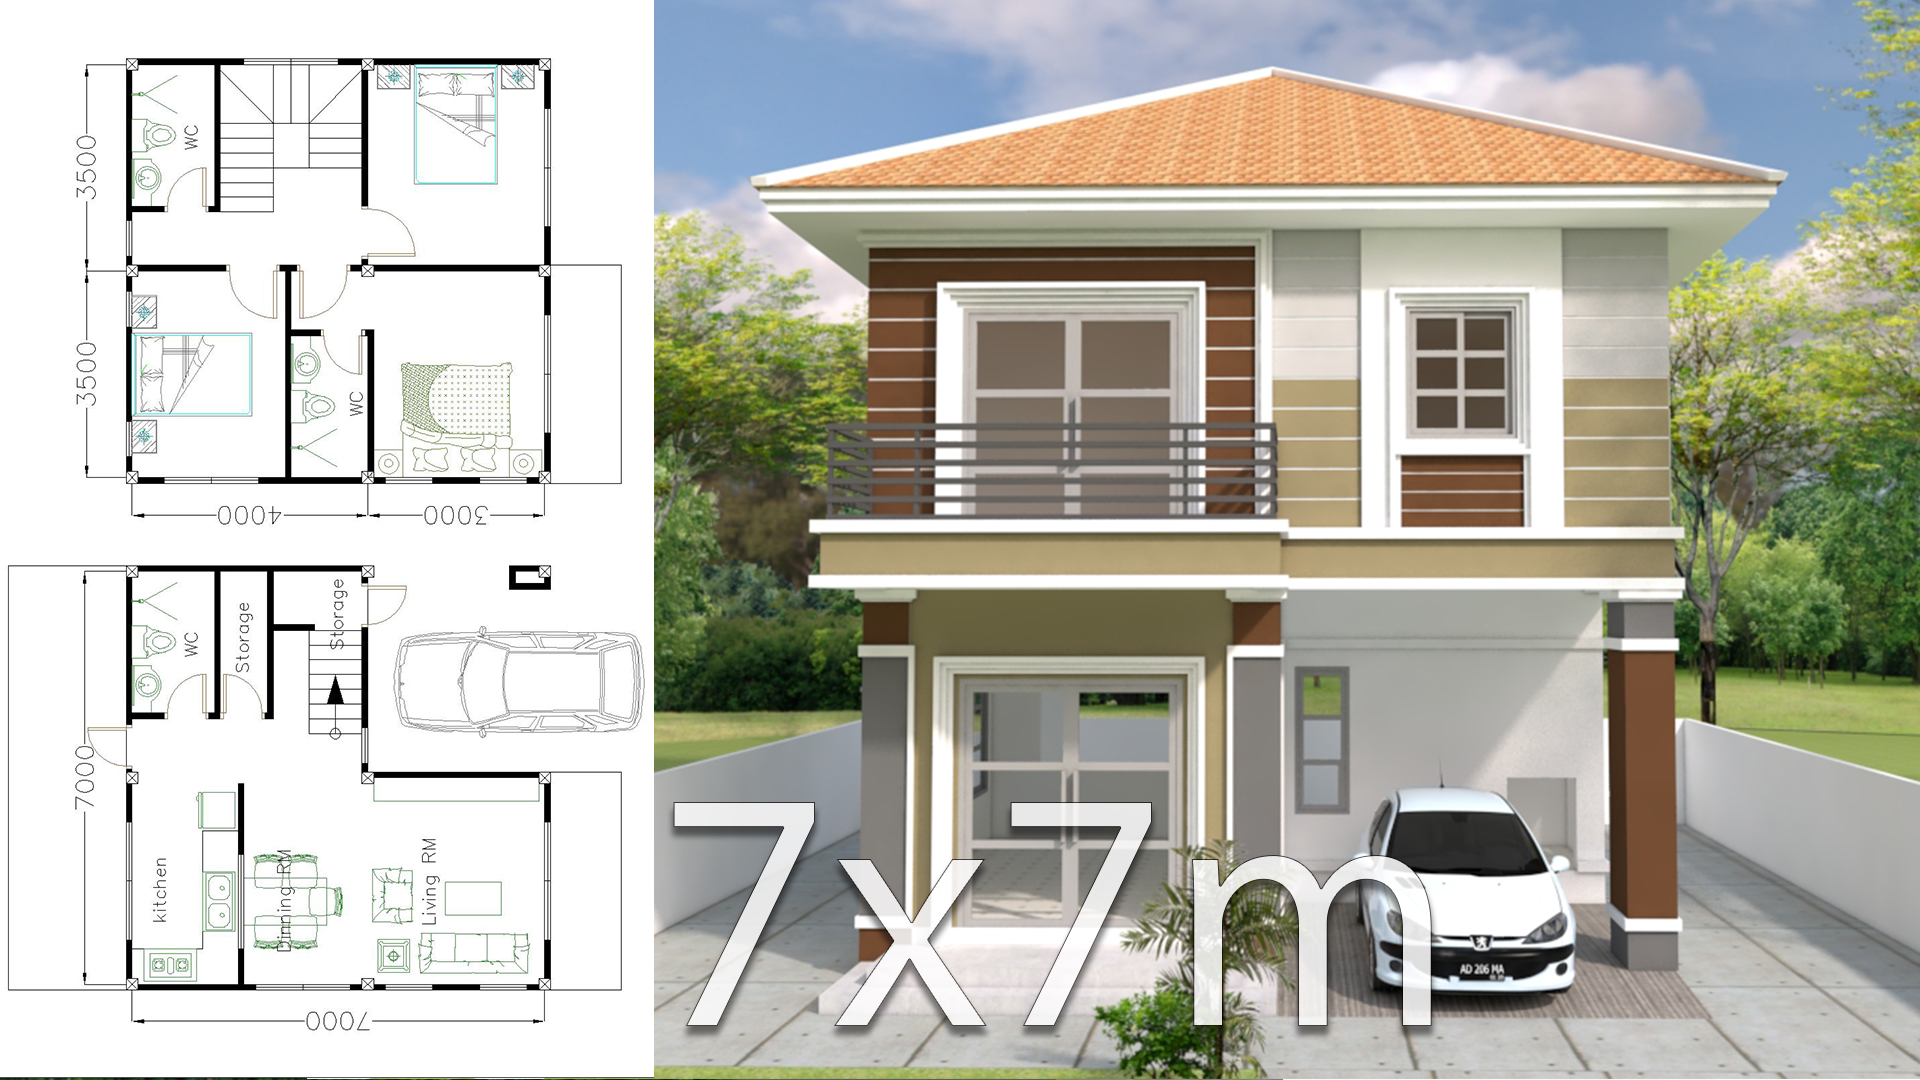 House Plans 7x7m with 3 Bedrooms - SamHousePlans